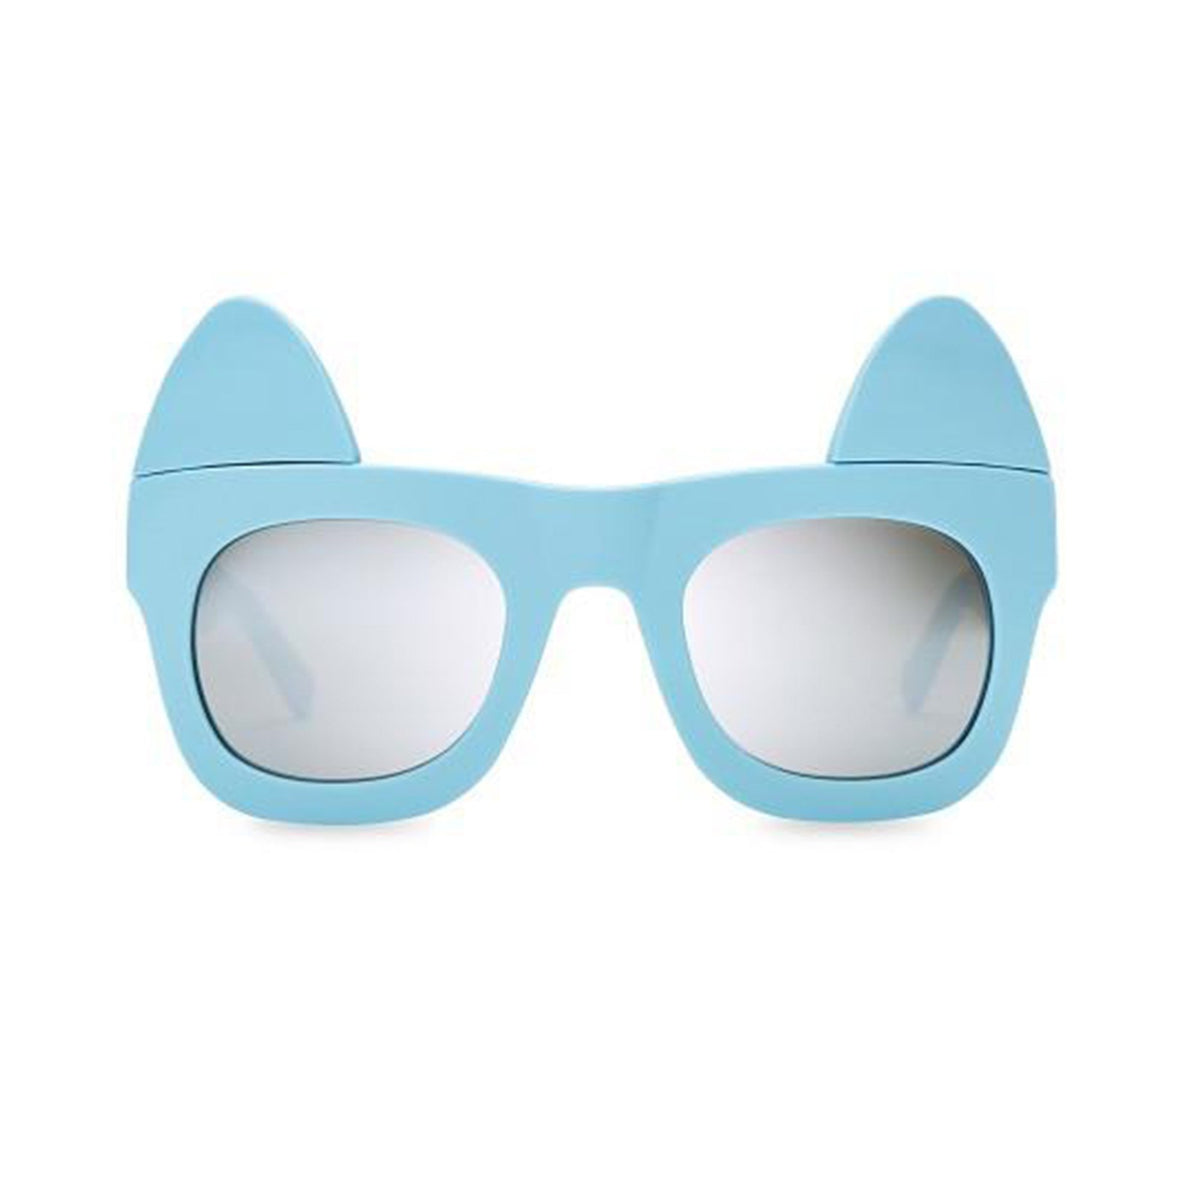 MAKE ME MEOW | OUR LITTLE SECRET | POWDER BLUE